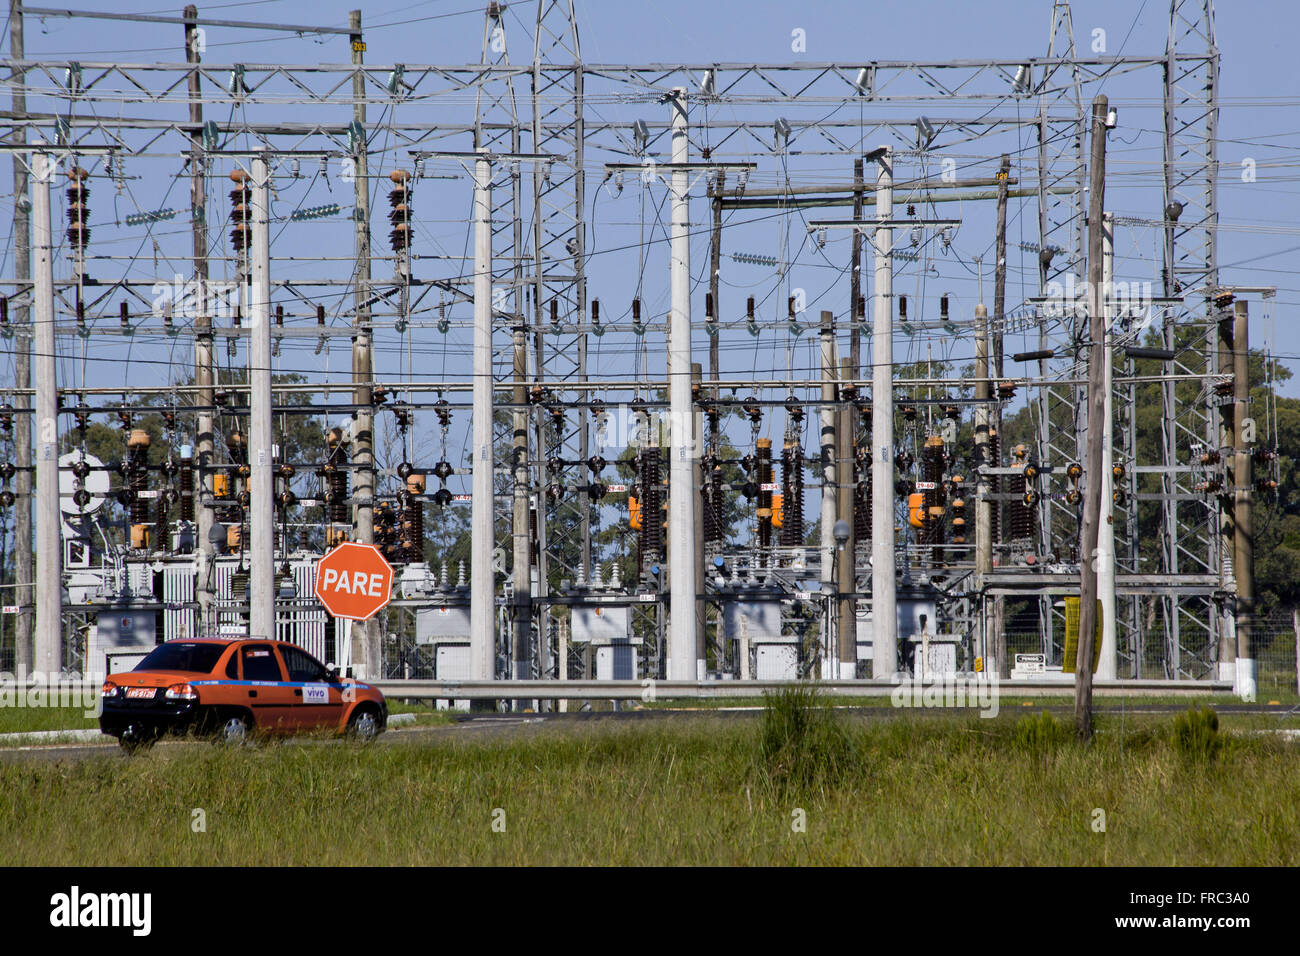 Automobile traveling at next street power substation city - Stock Image